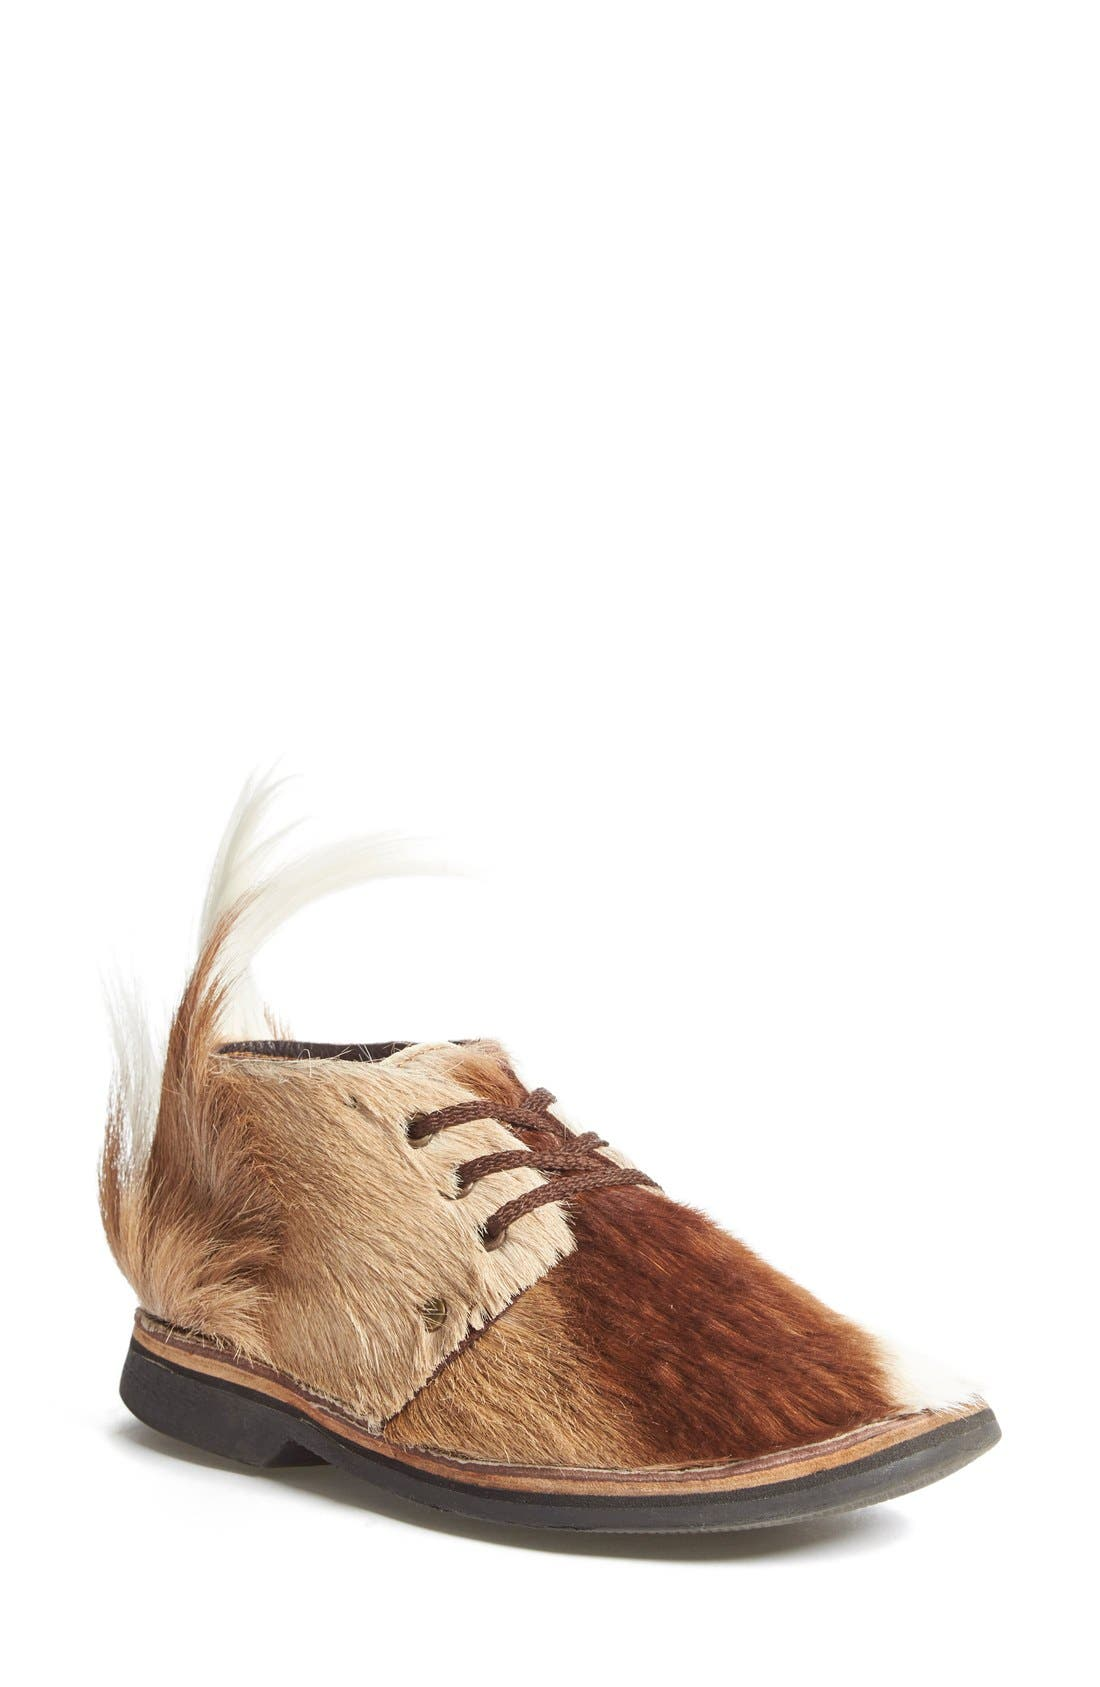 'Erongo' Springbok Vellie Boot,                         Main,                         color, Natural